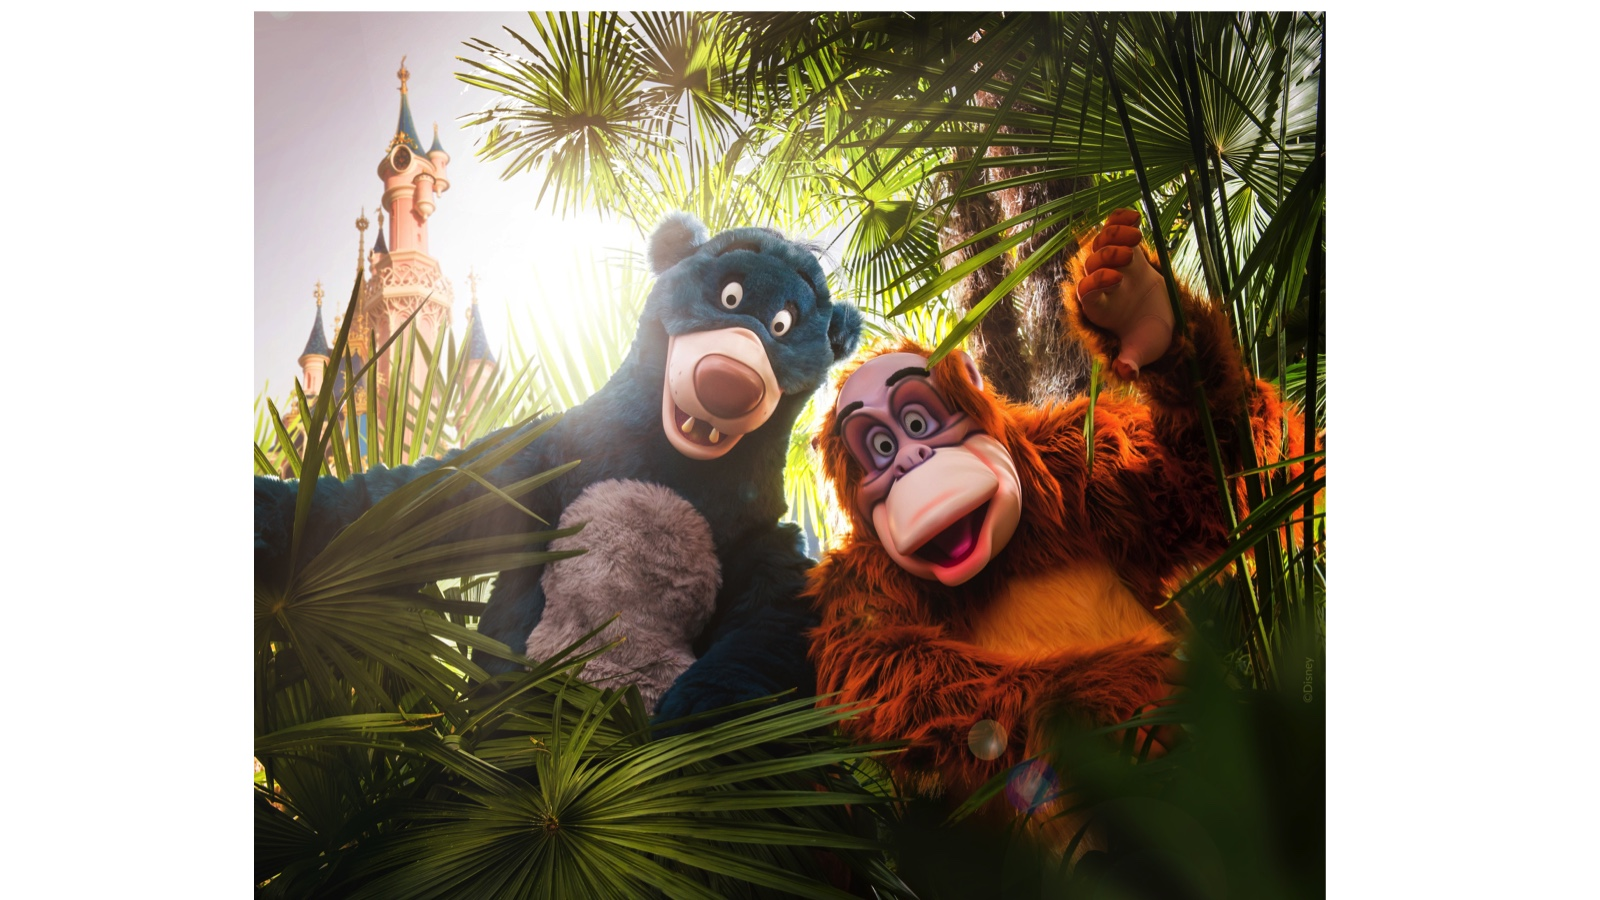 The Lion King & Jungle Festival Starts June 30 at Disneyland Paris